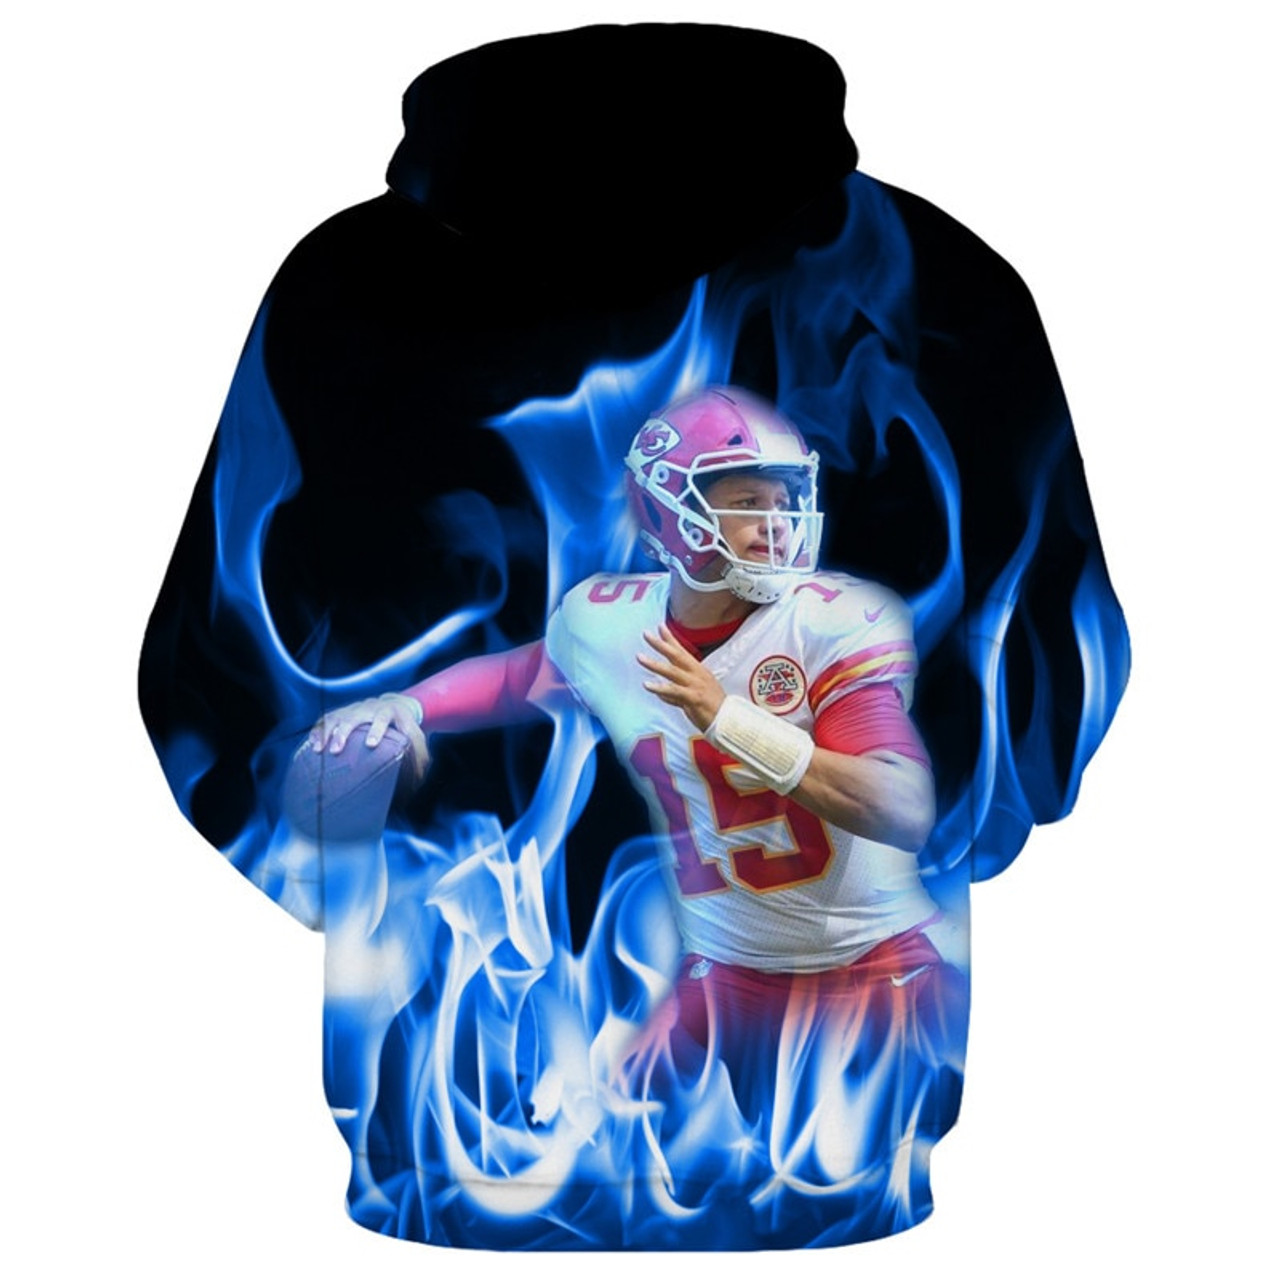 **(NEW-OFFICIALLY-LICENSED-N.F.L.KANSAS-CITY-CHIEFS,OFFICIAL-TEAM-HOODIES/NEW-CUSTOM-DETAILED-3D-GRAPHIC-PRINTED/PREMIUM-ALL-OVER-DOUBLE-SIDED-GRAPHICS/OFFICIAL-CHIEFS-TEAM-COLORS & CLASSIC-CHIEFS-LOGOS/PATRICK-MAHOMES-NO.15-PULLOVER-TEAM-HOODIES)**